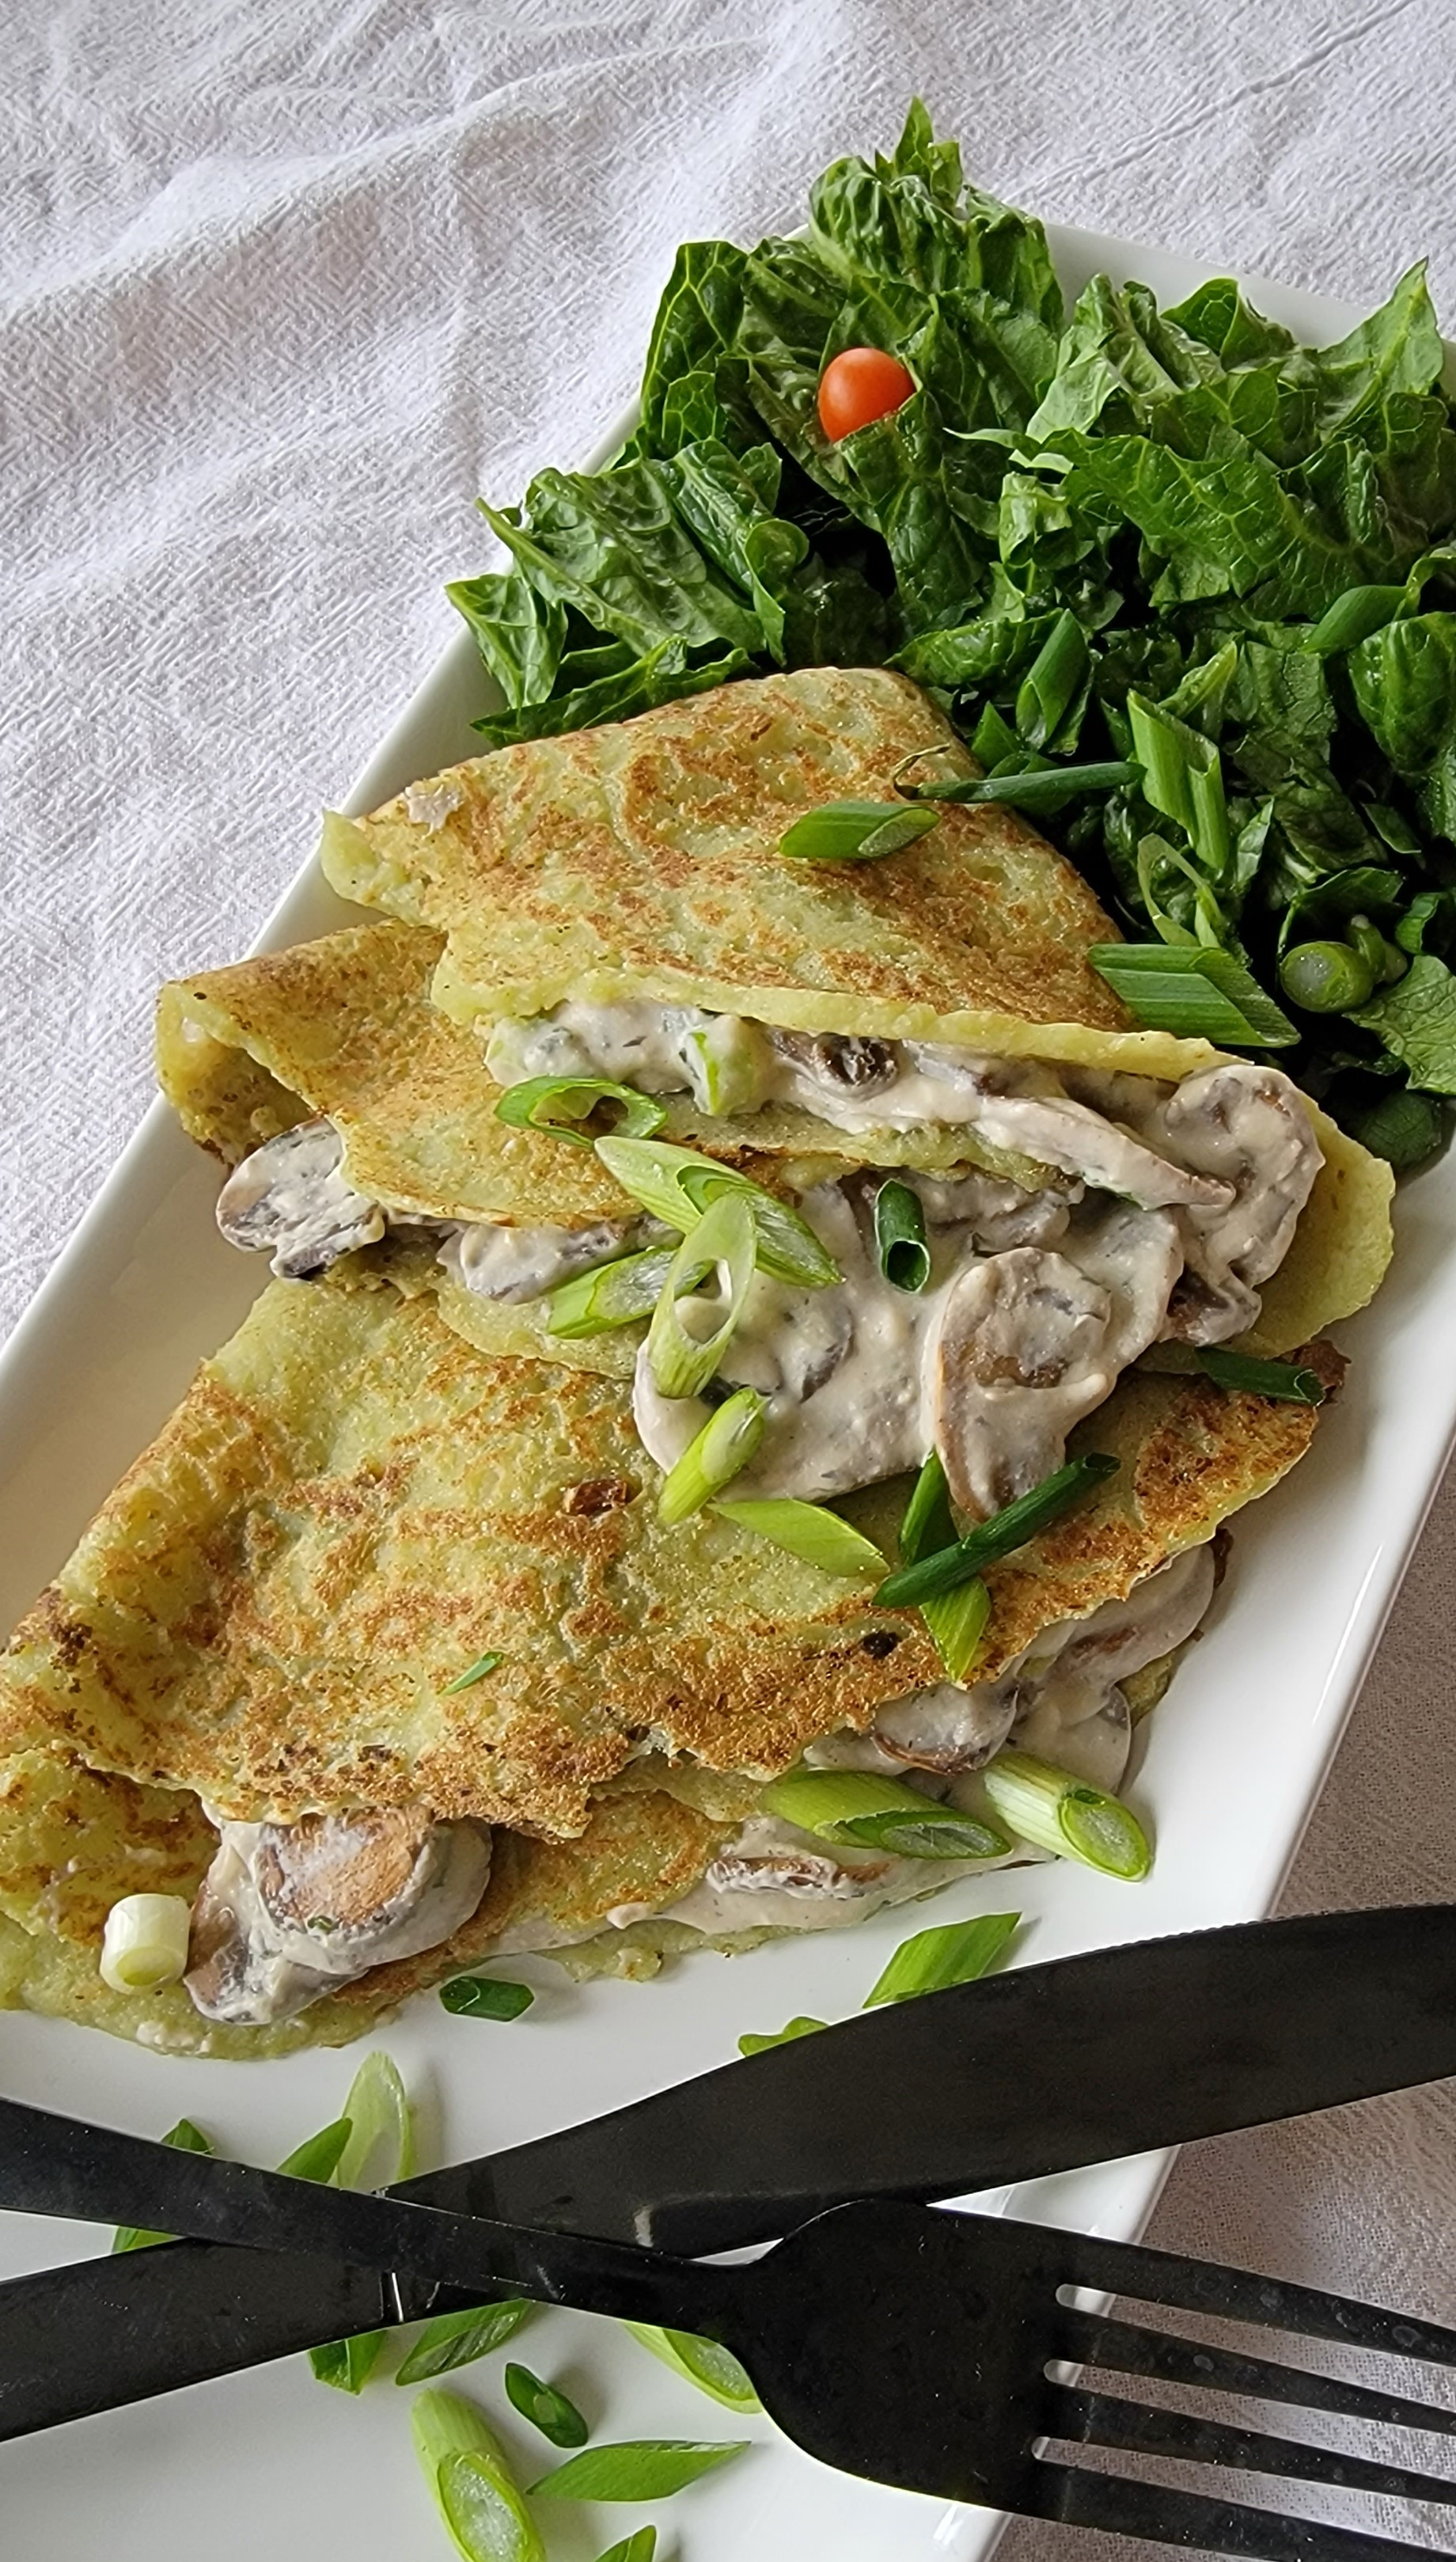 Finished Riced Broccoli Crepes with Mushroom Cream Filling